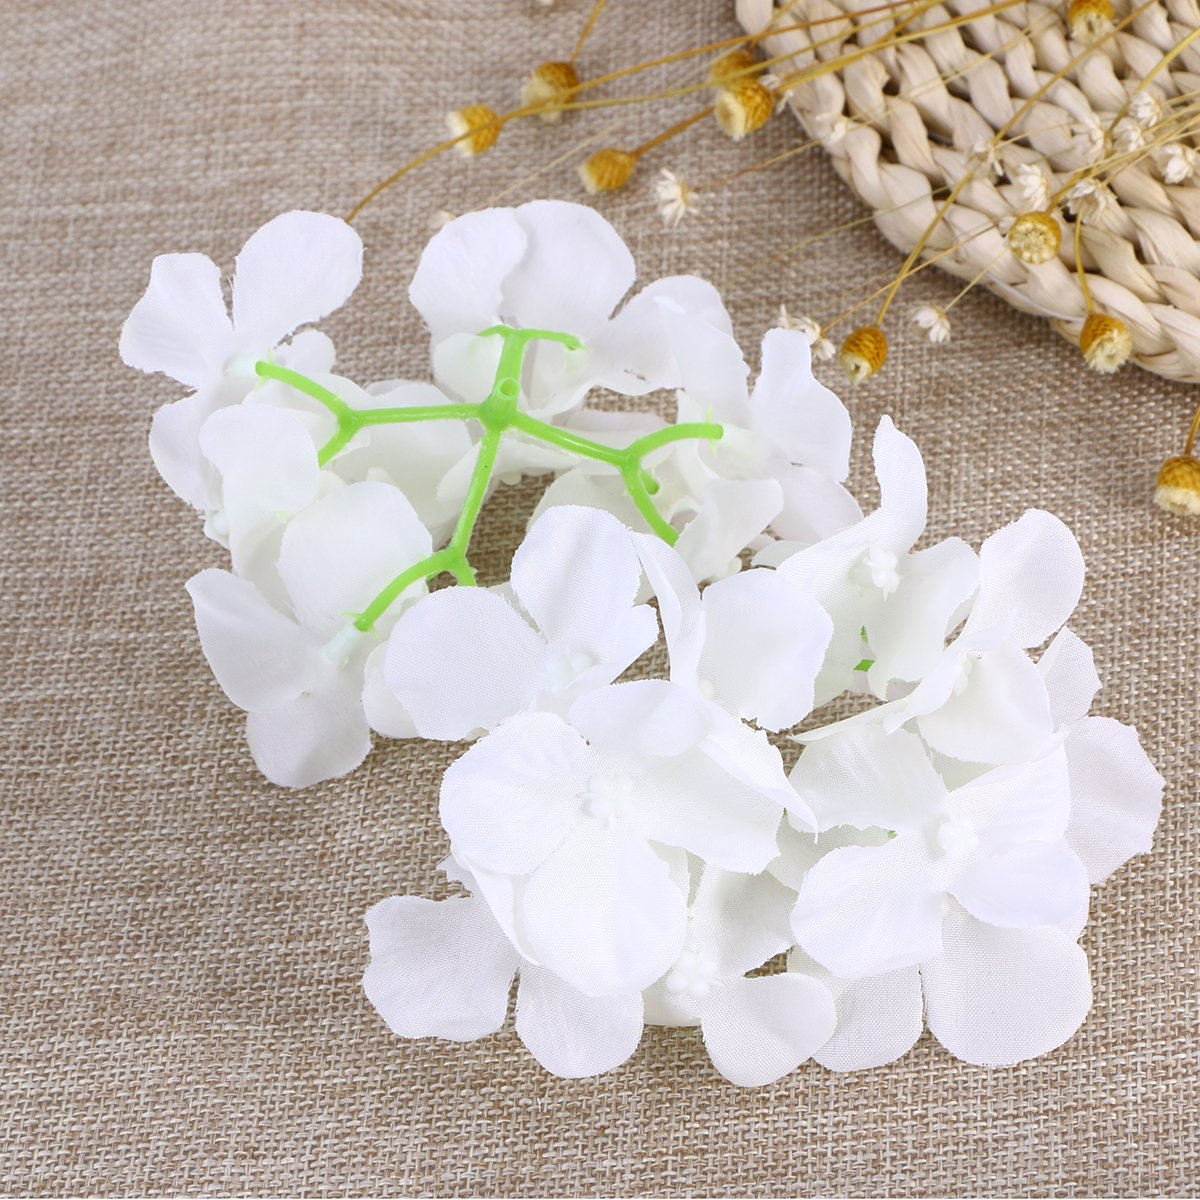 Amazon.com: Tinksky Hydrangea Flowers for Home Wedding Decoration ...